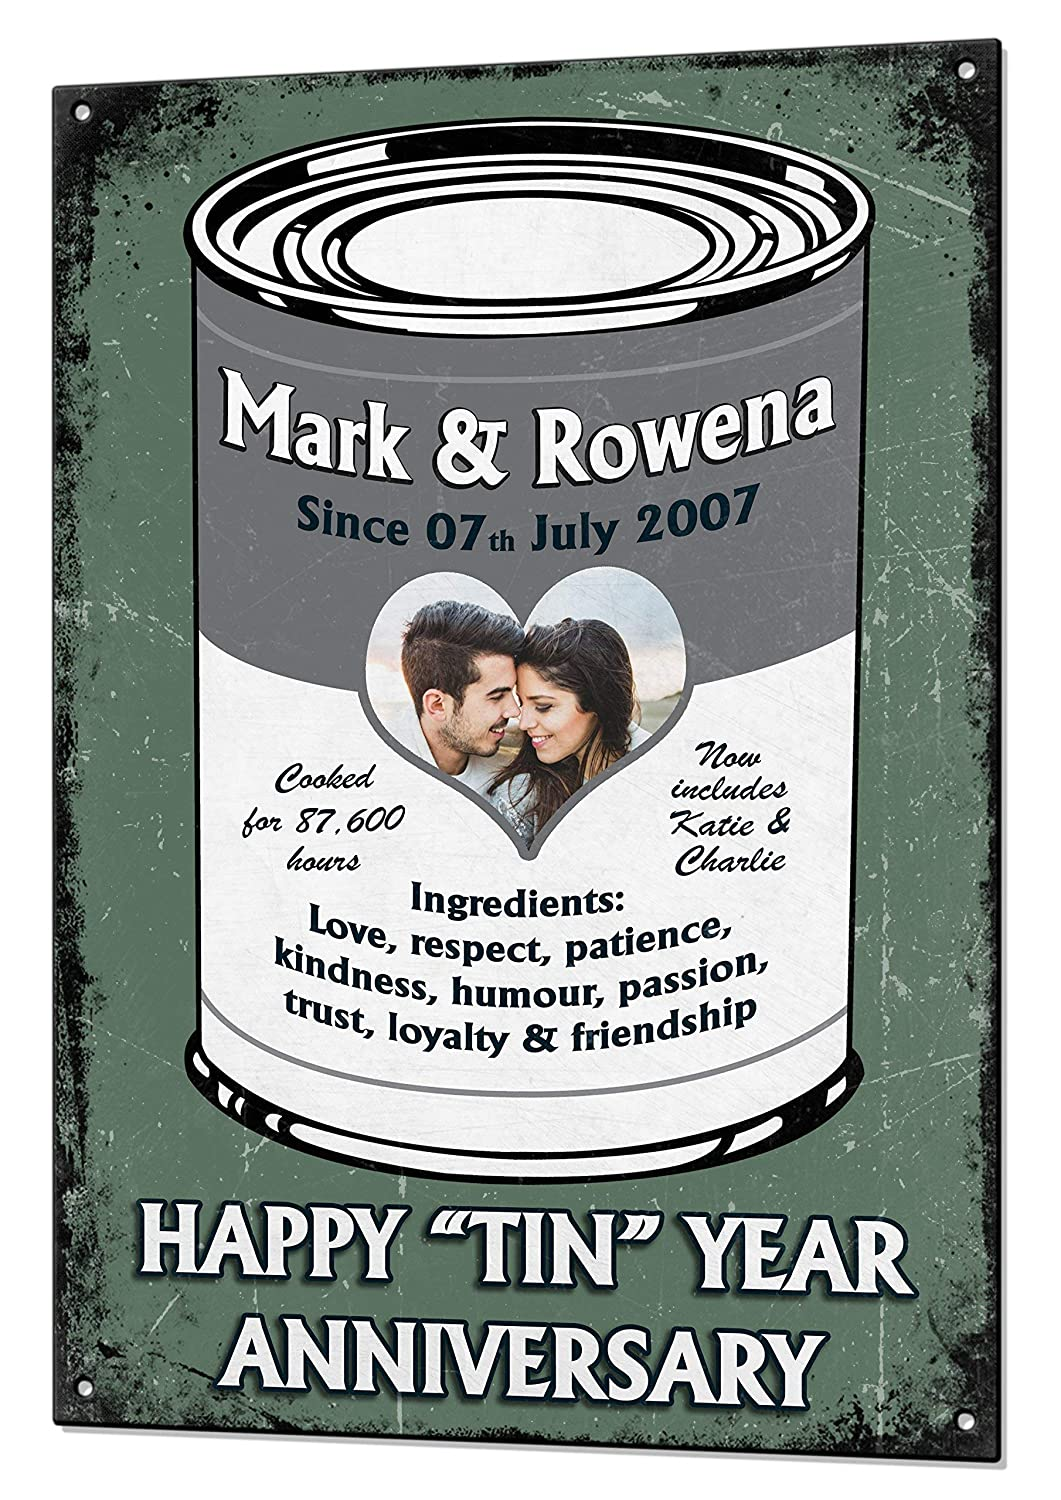 10 Year Tin Wedding Anniversary Gift Custom Vintage Metal Matching Fridge Magnet Keepsake Sign Retro Plaque Fully Personalised Photo All Text Amazon Co Uk Handmade